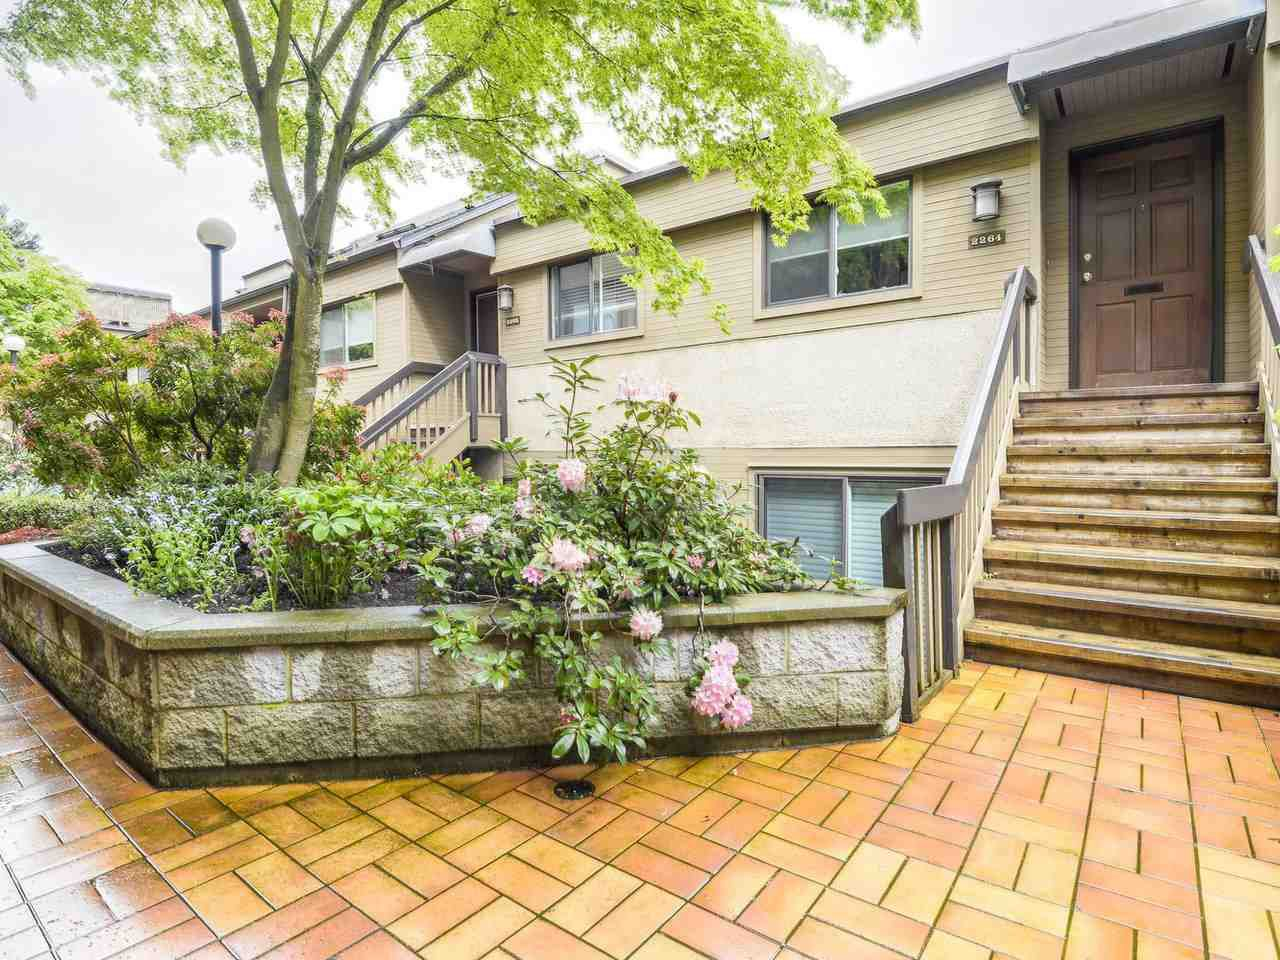 """Main Photo: 2264 ALDER Street in Vancouver: Fairview VW Townhouse for sale in """"Marina Place"""" (Vancouver West)  : MLS®# R2163720"""